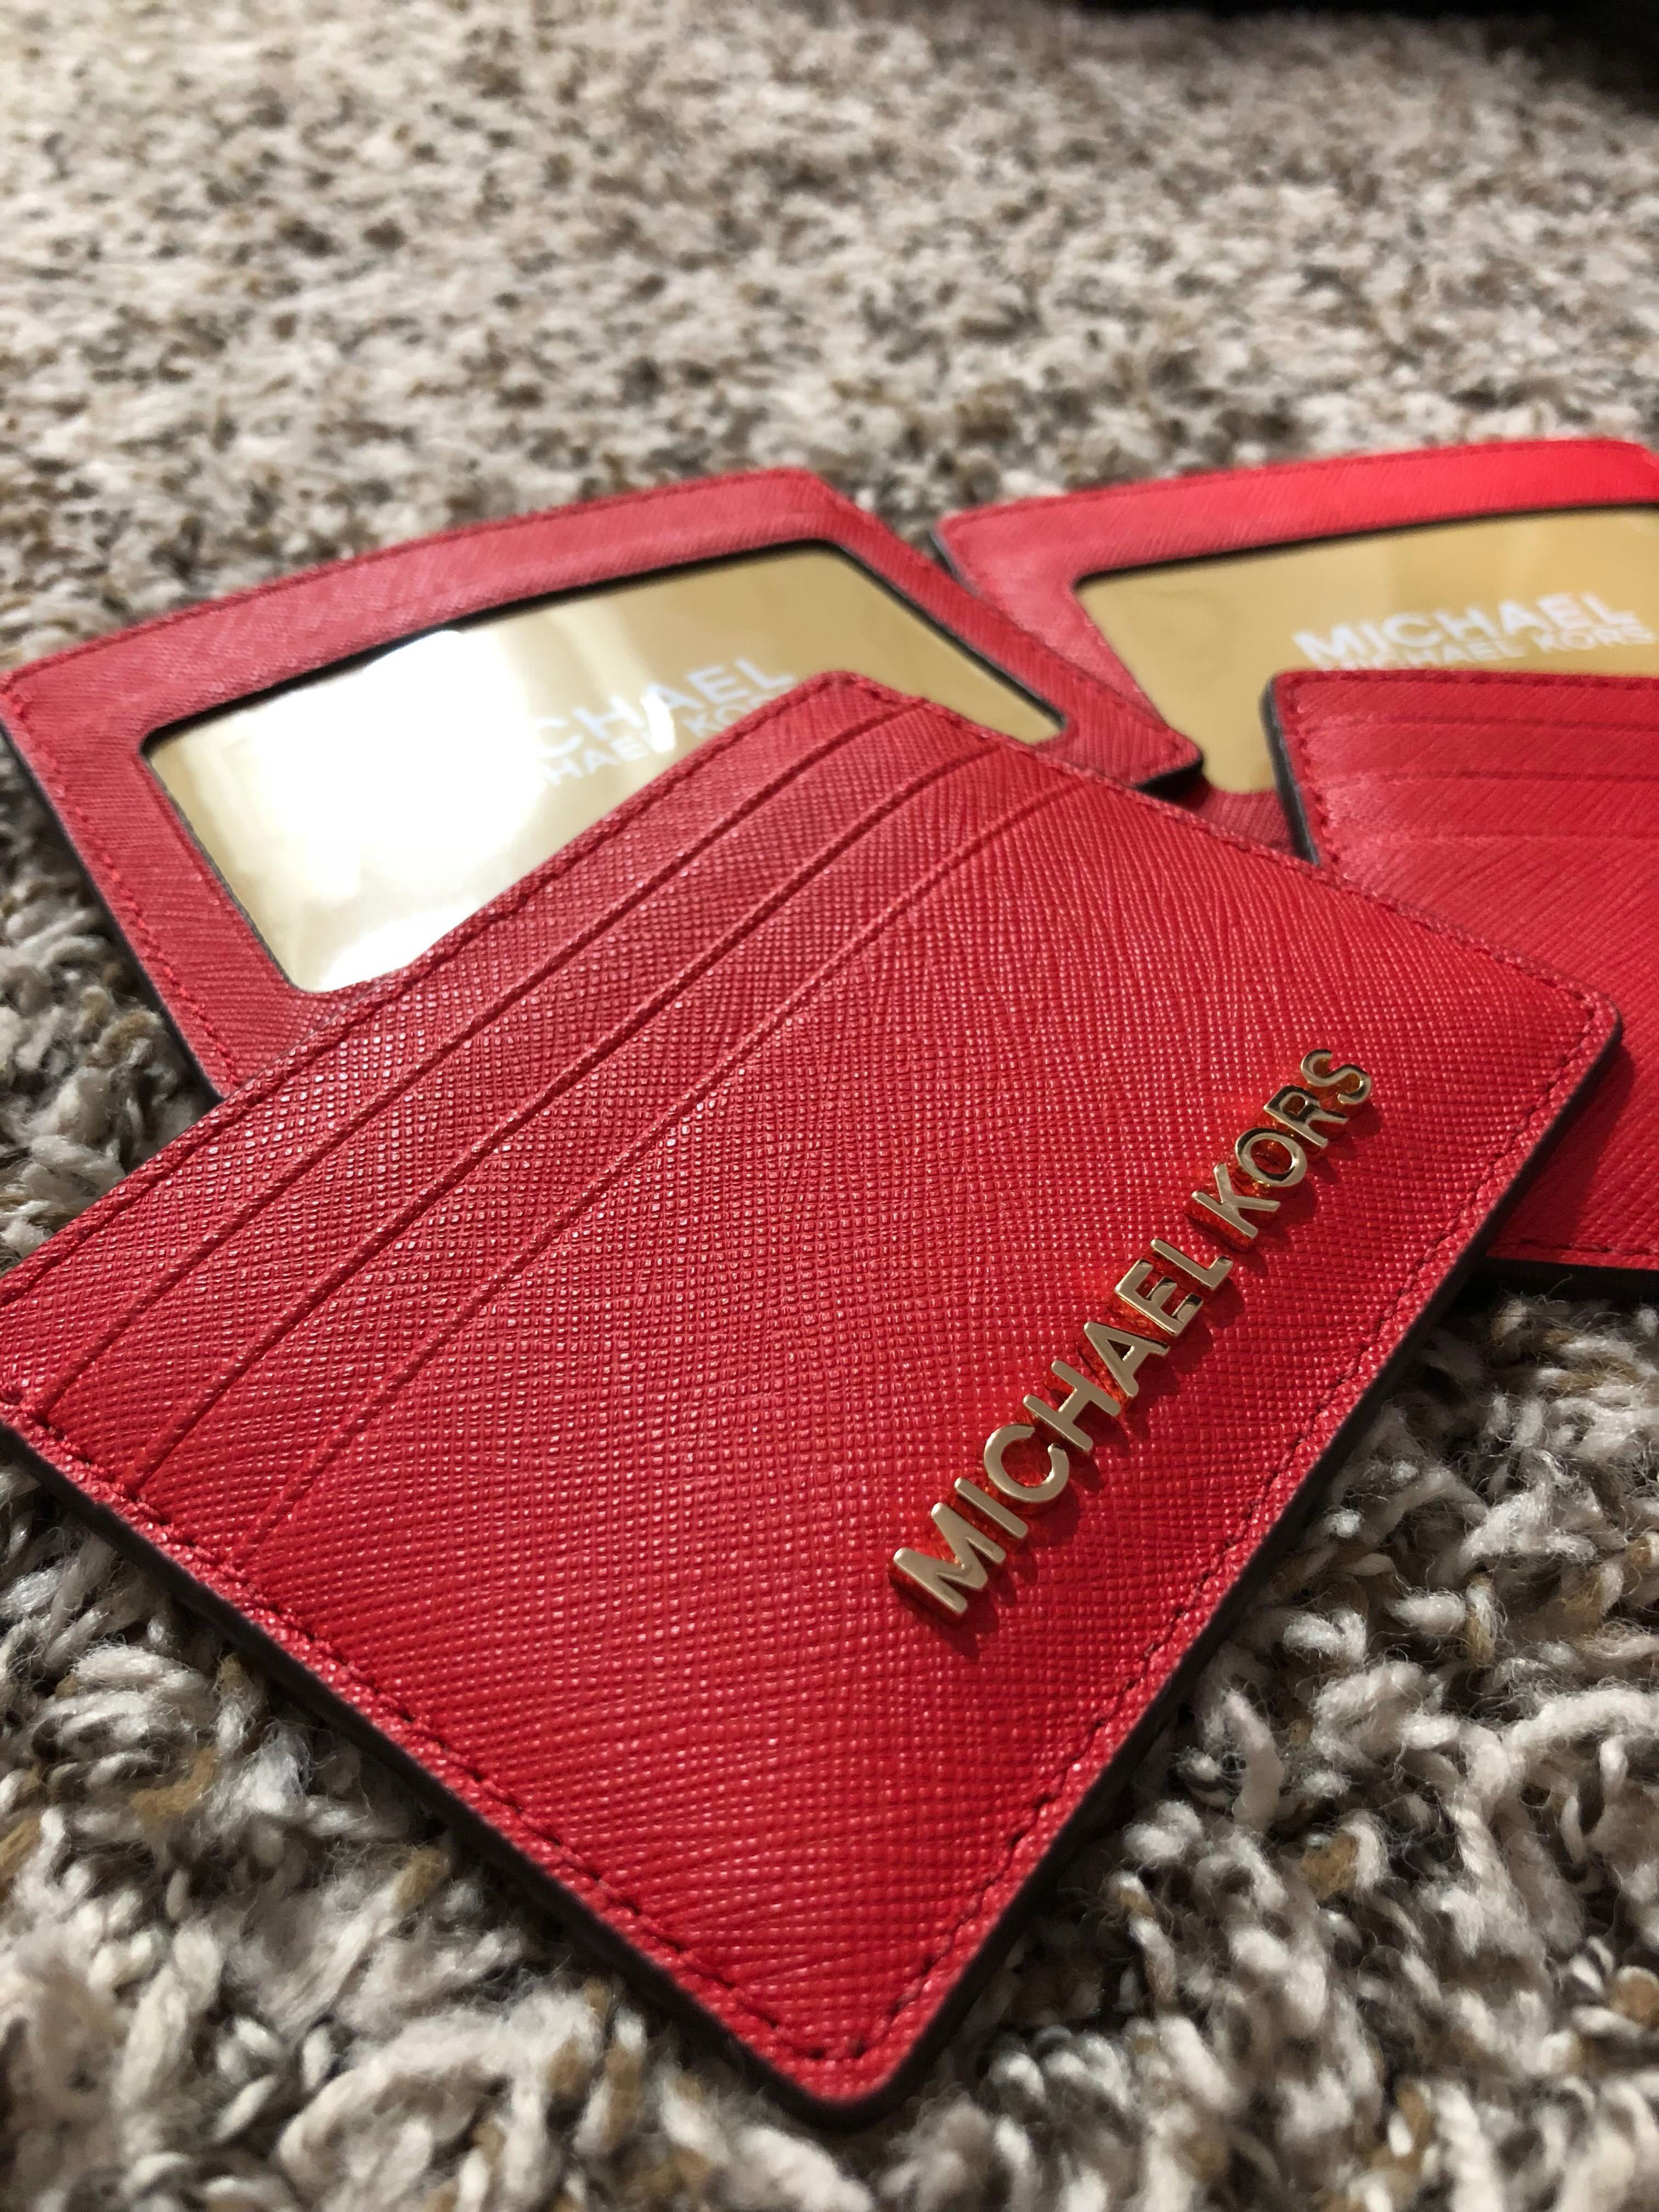 8a95e60087ab BN Authentic Michael Kors Card Holder, Luxury, Bags & Wallets ...